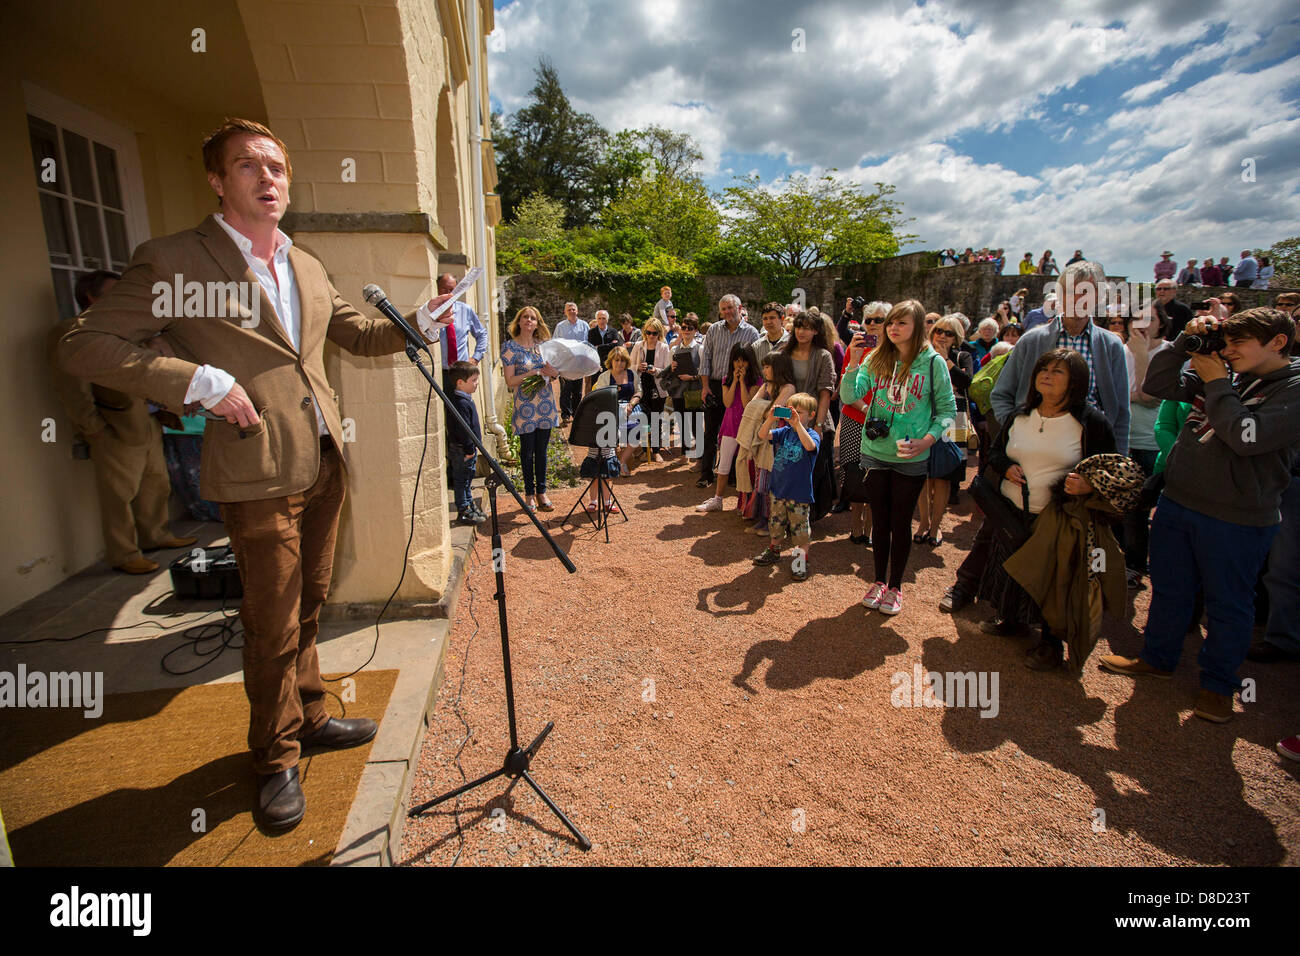 Actor Damien Lewis officially unveils the newly renovated Mansion at Aberglasney Gardens in Carmarthenshire, West - Stock Image